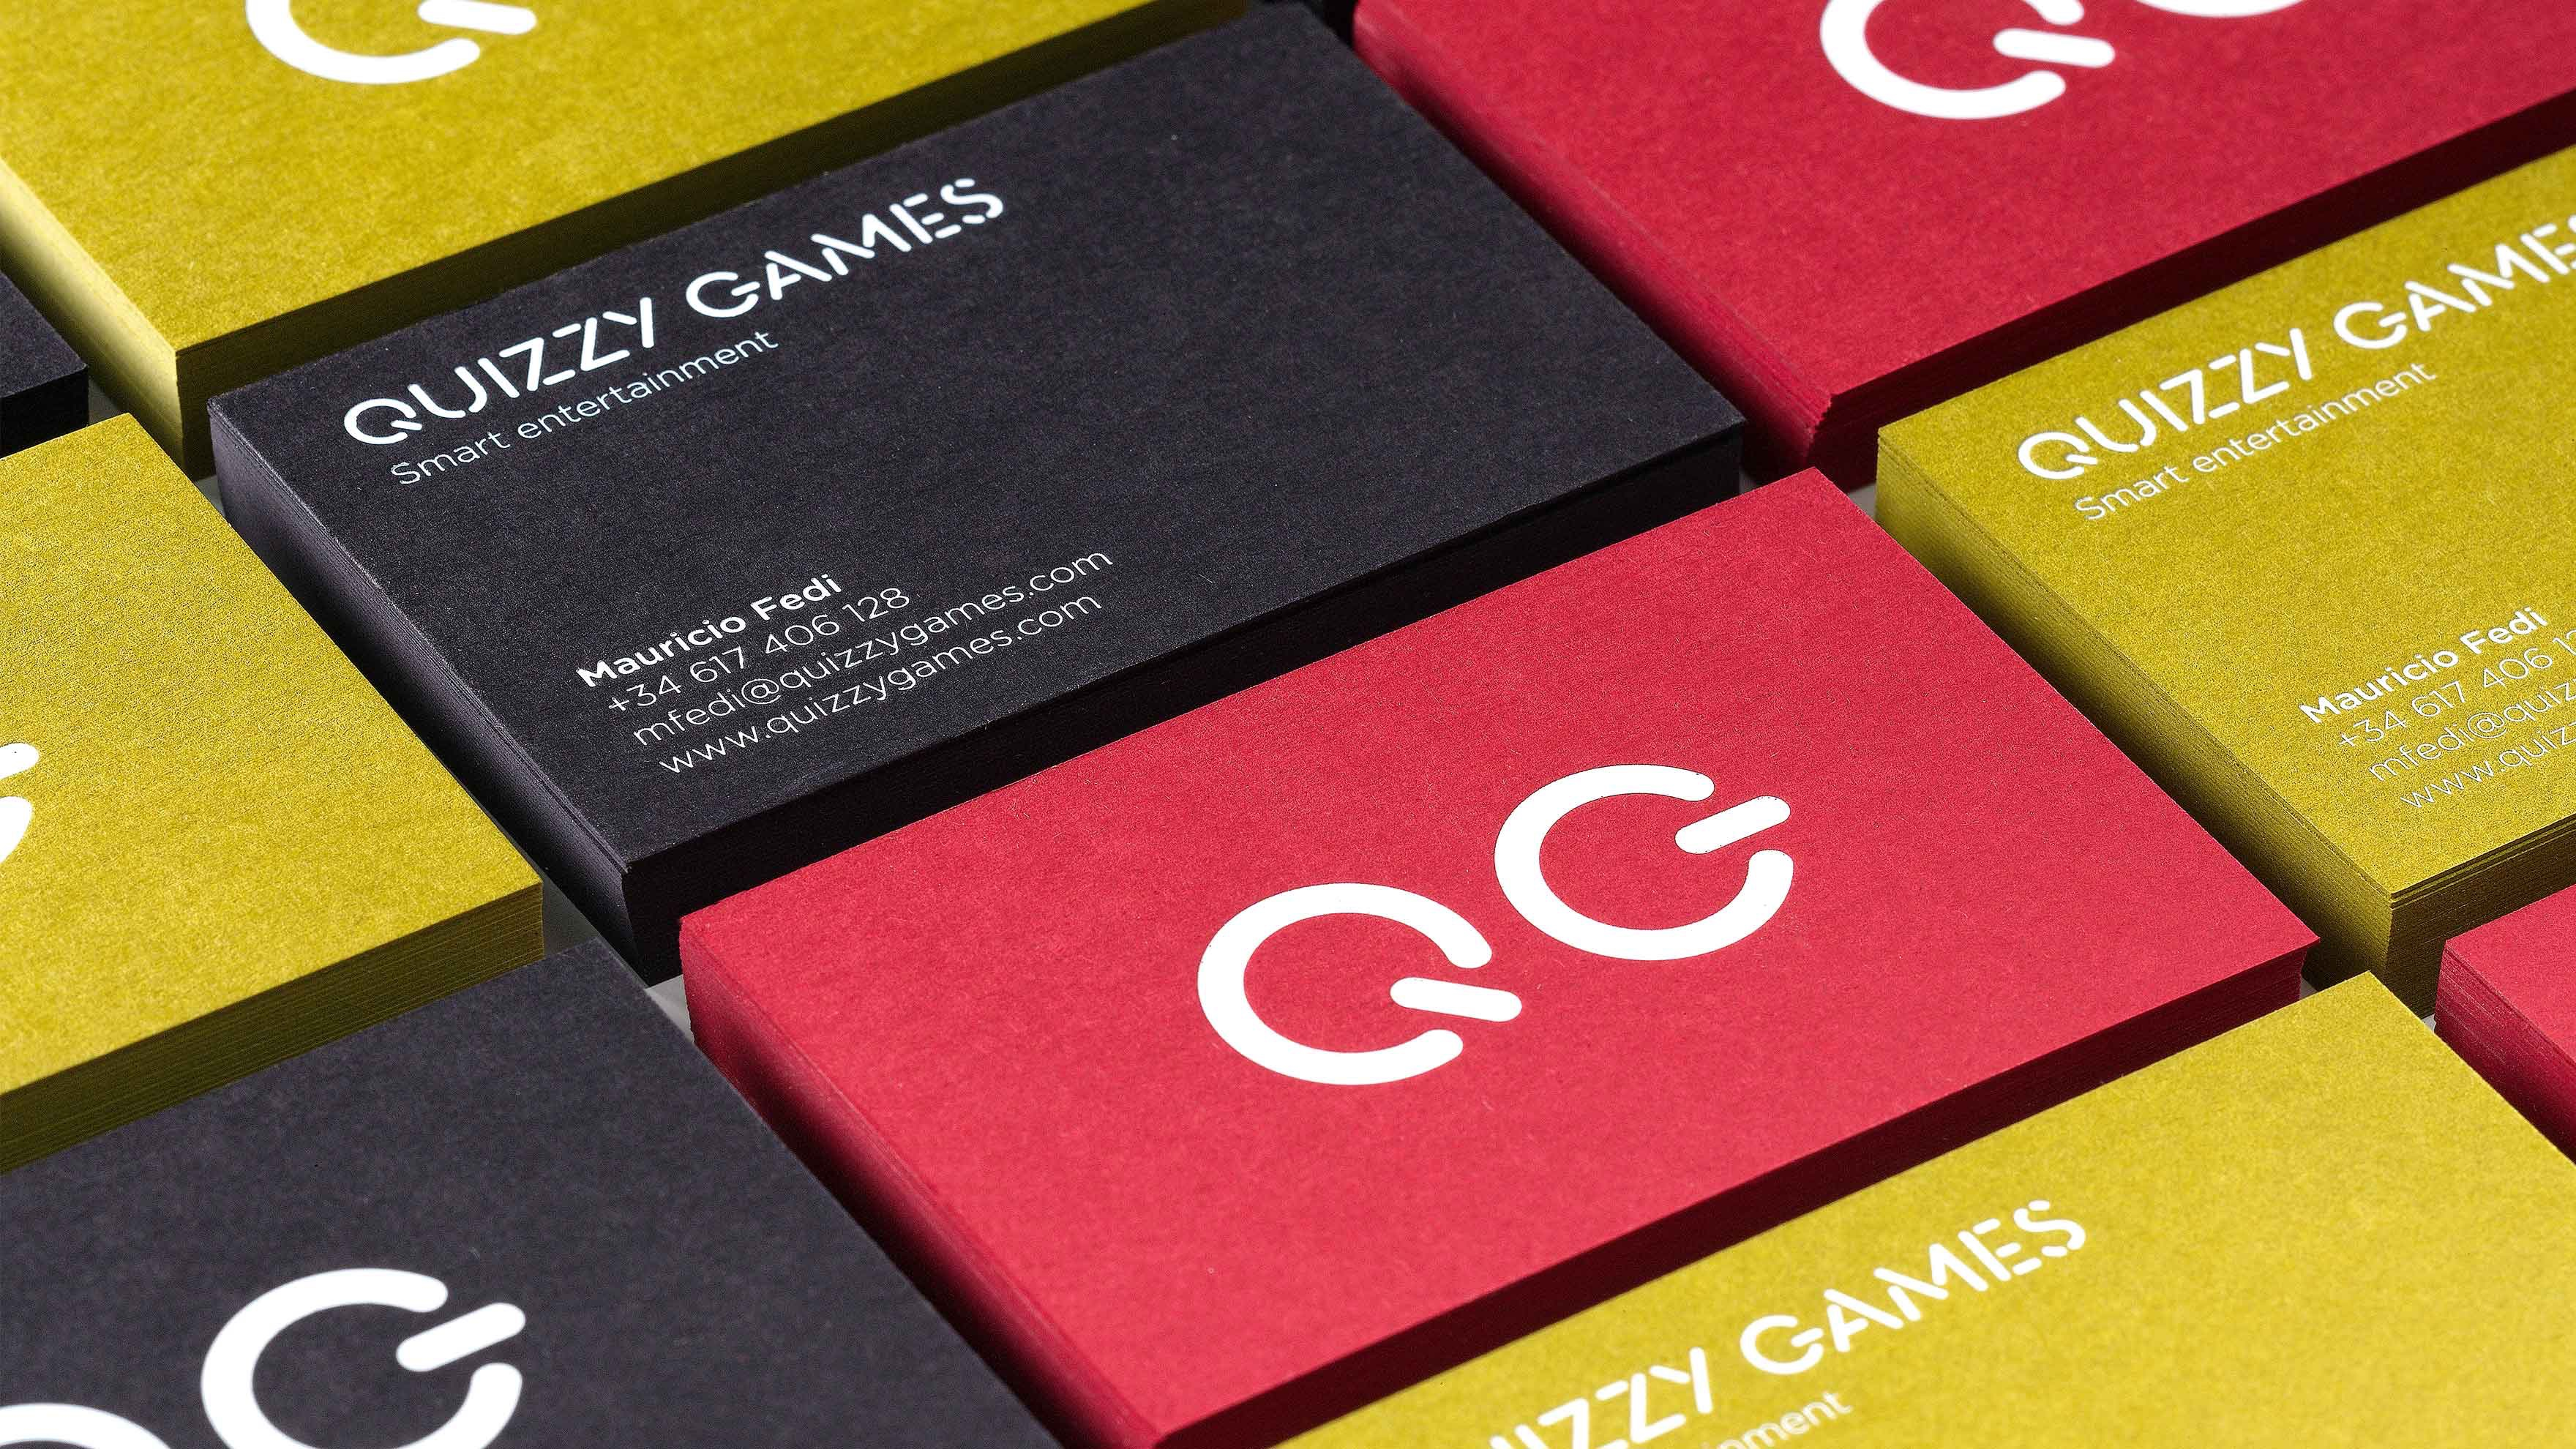 QUIZZY GAMES / CORPORATE IDENTITY / BRANDING